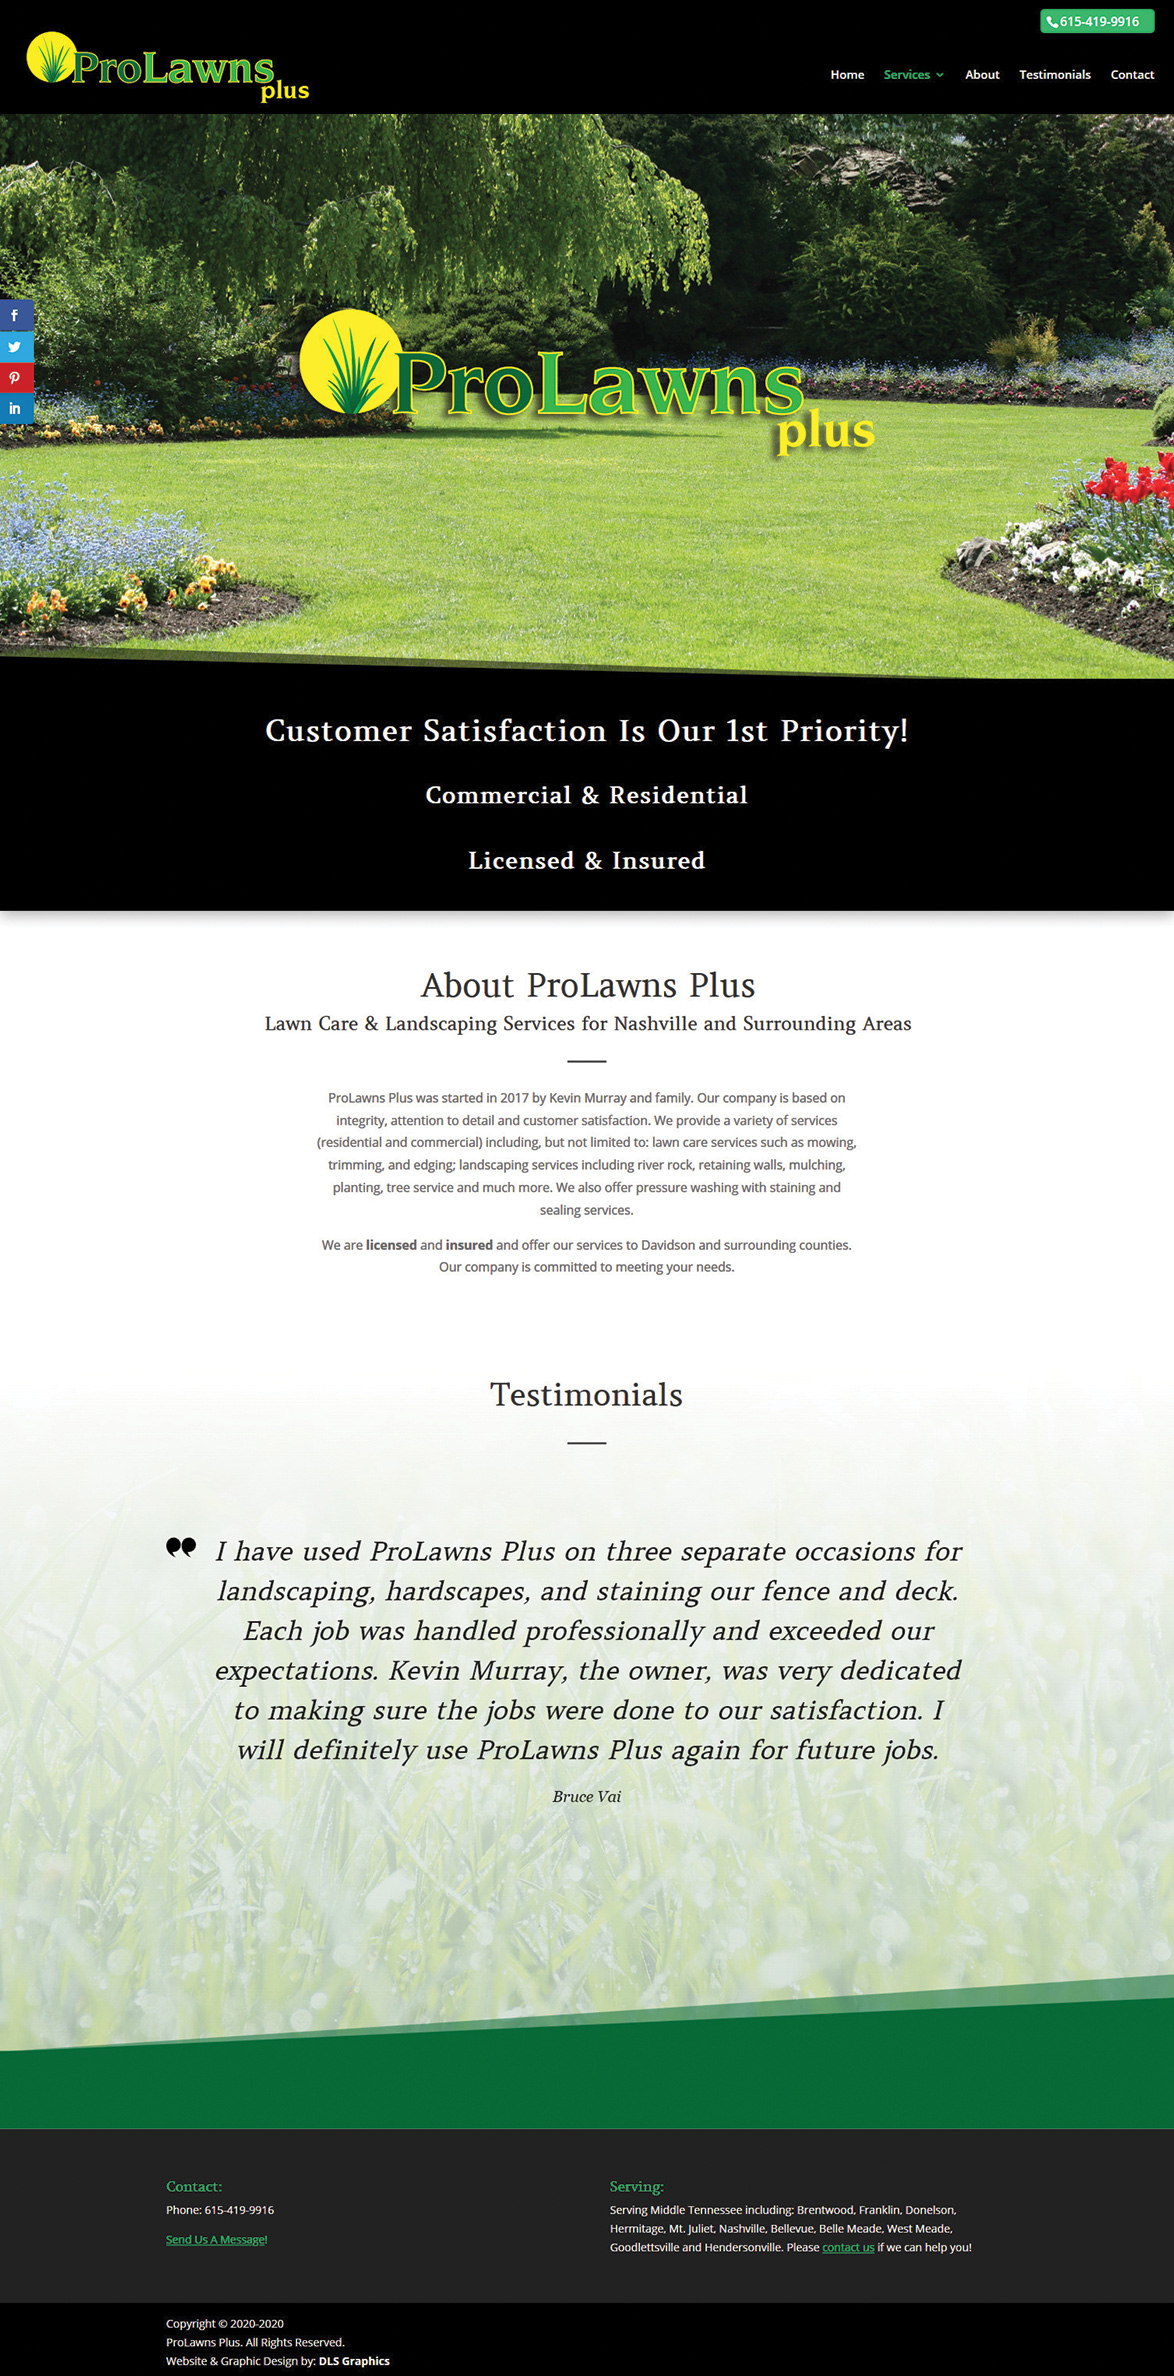 ProLawns Plus Home Page